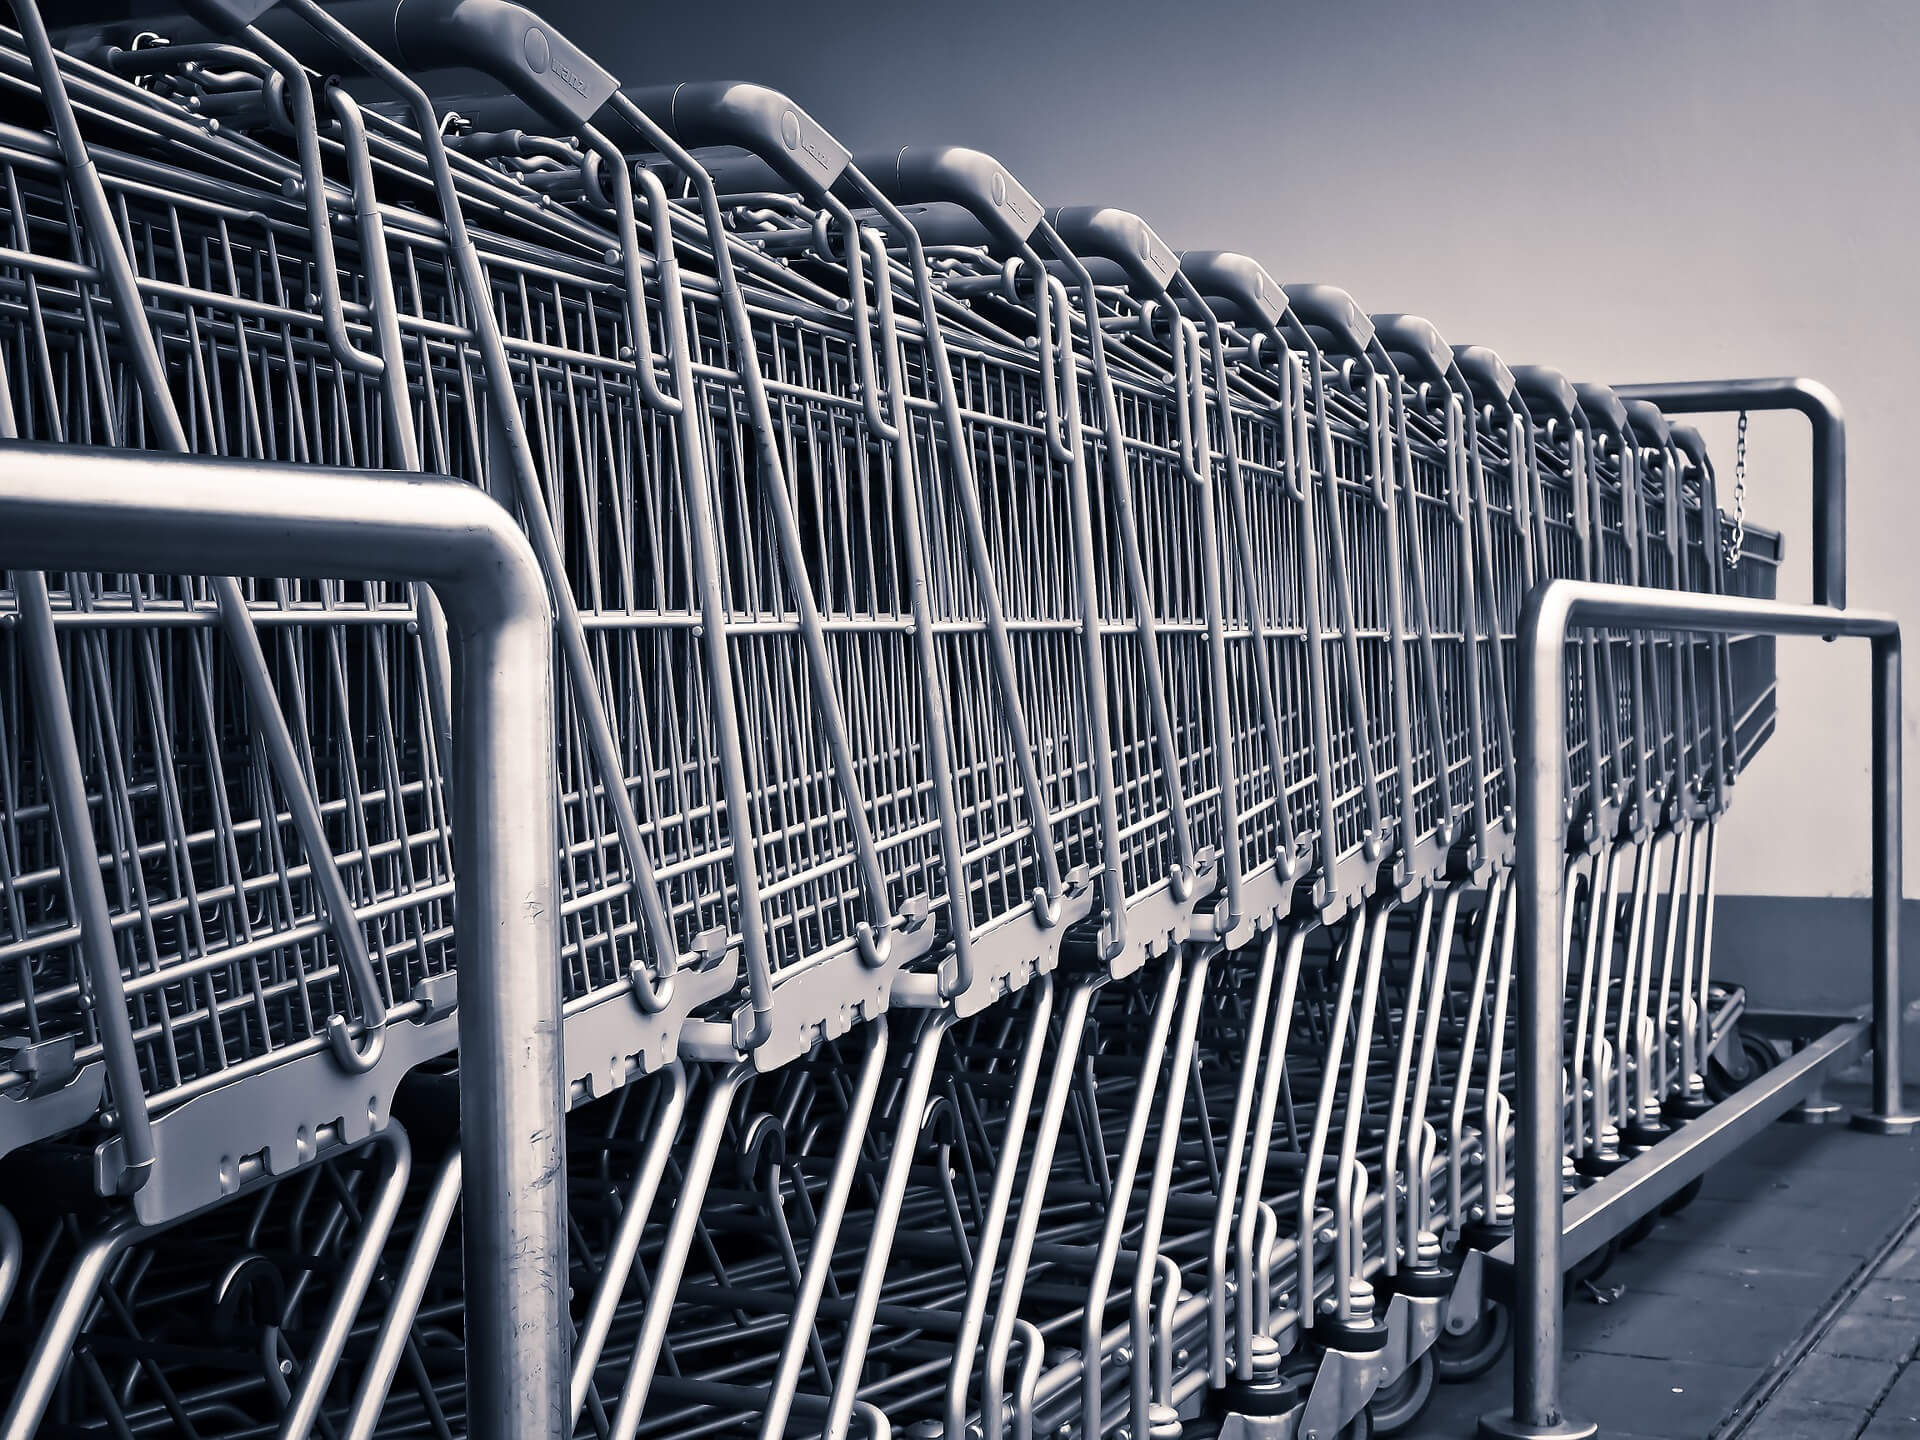 stacked row of bright silver shopping carts